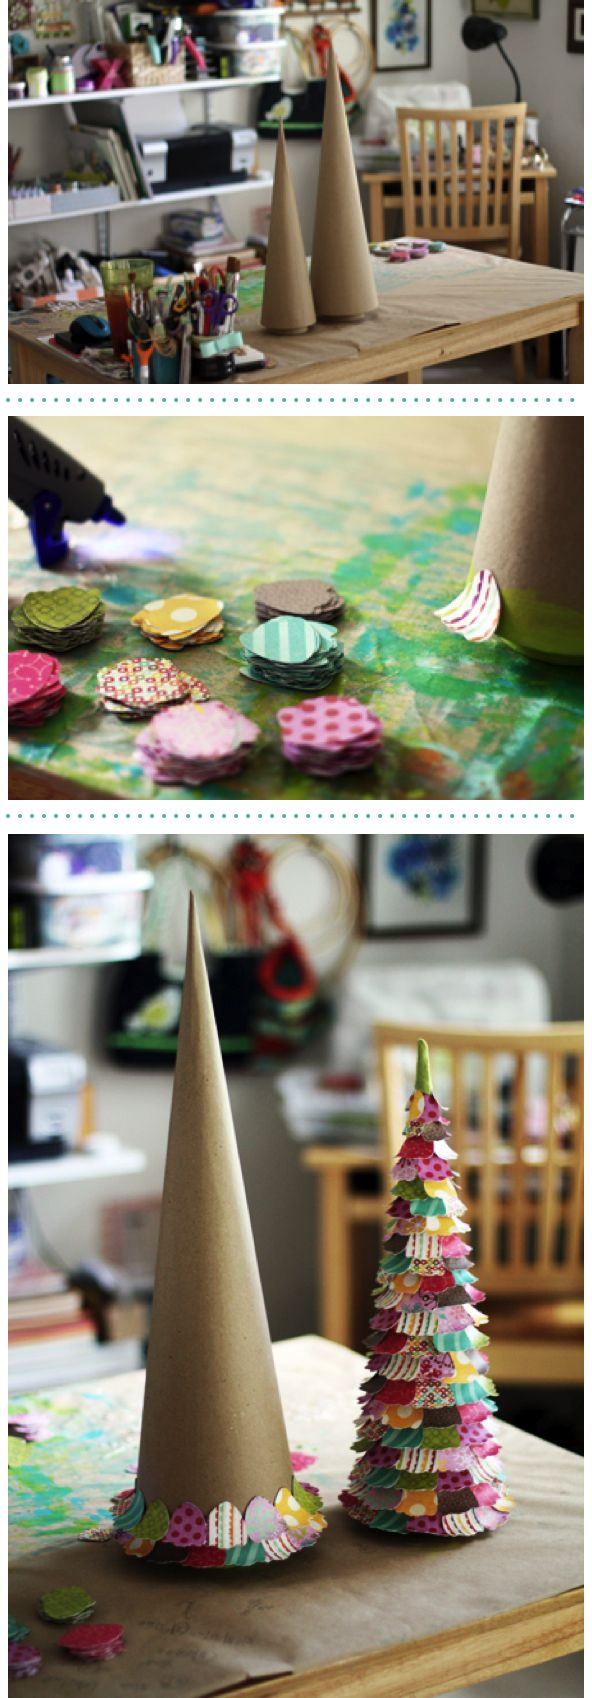 How to make a scrapbook paper Christmas tree.  I think using little fabric swatches would be cute, too, trimmed with pinking shears to stop fraying.